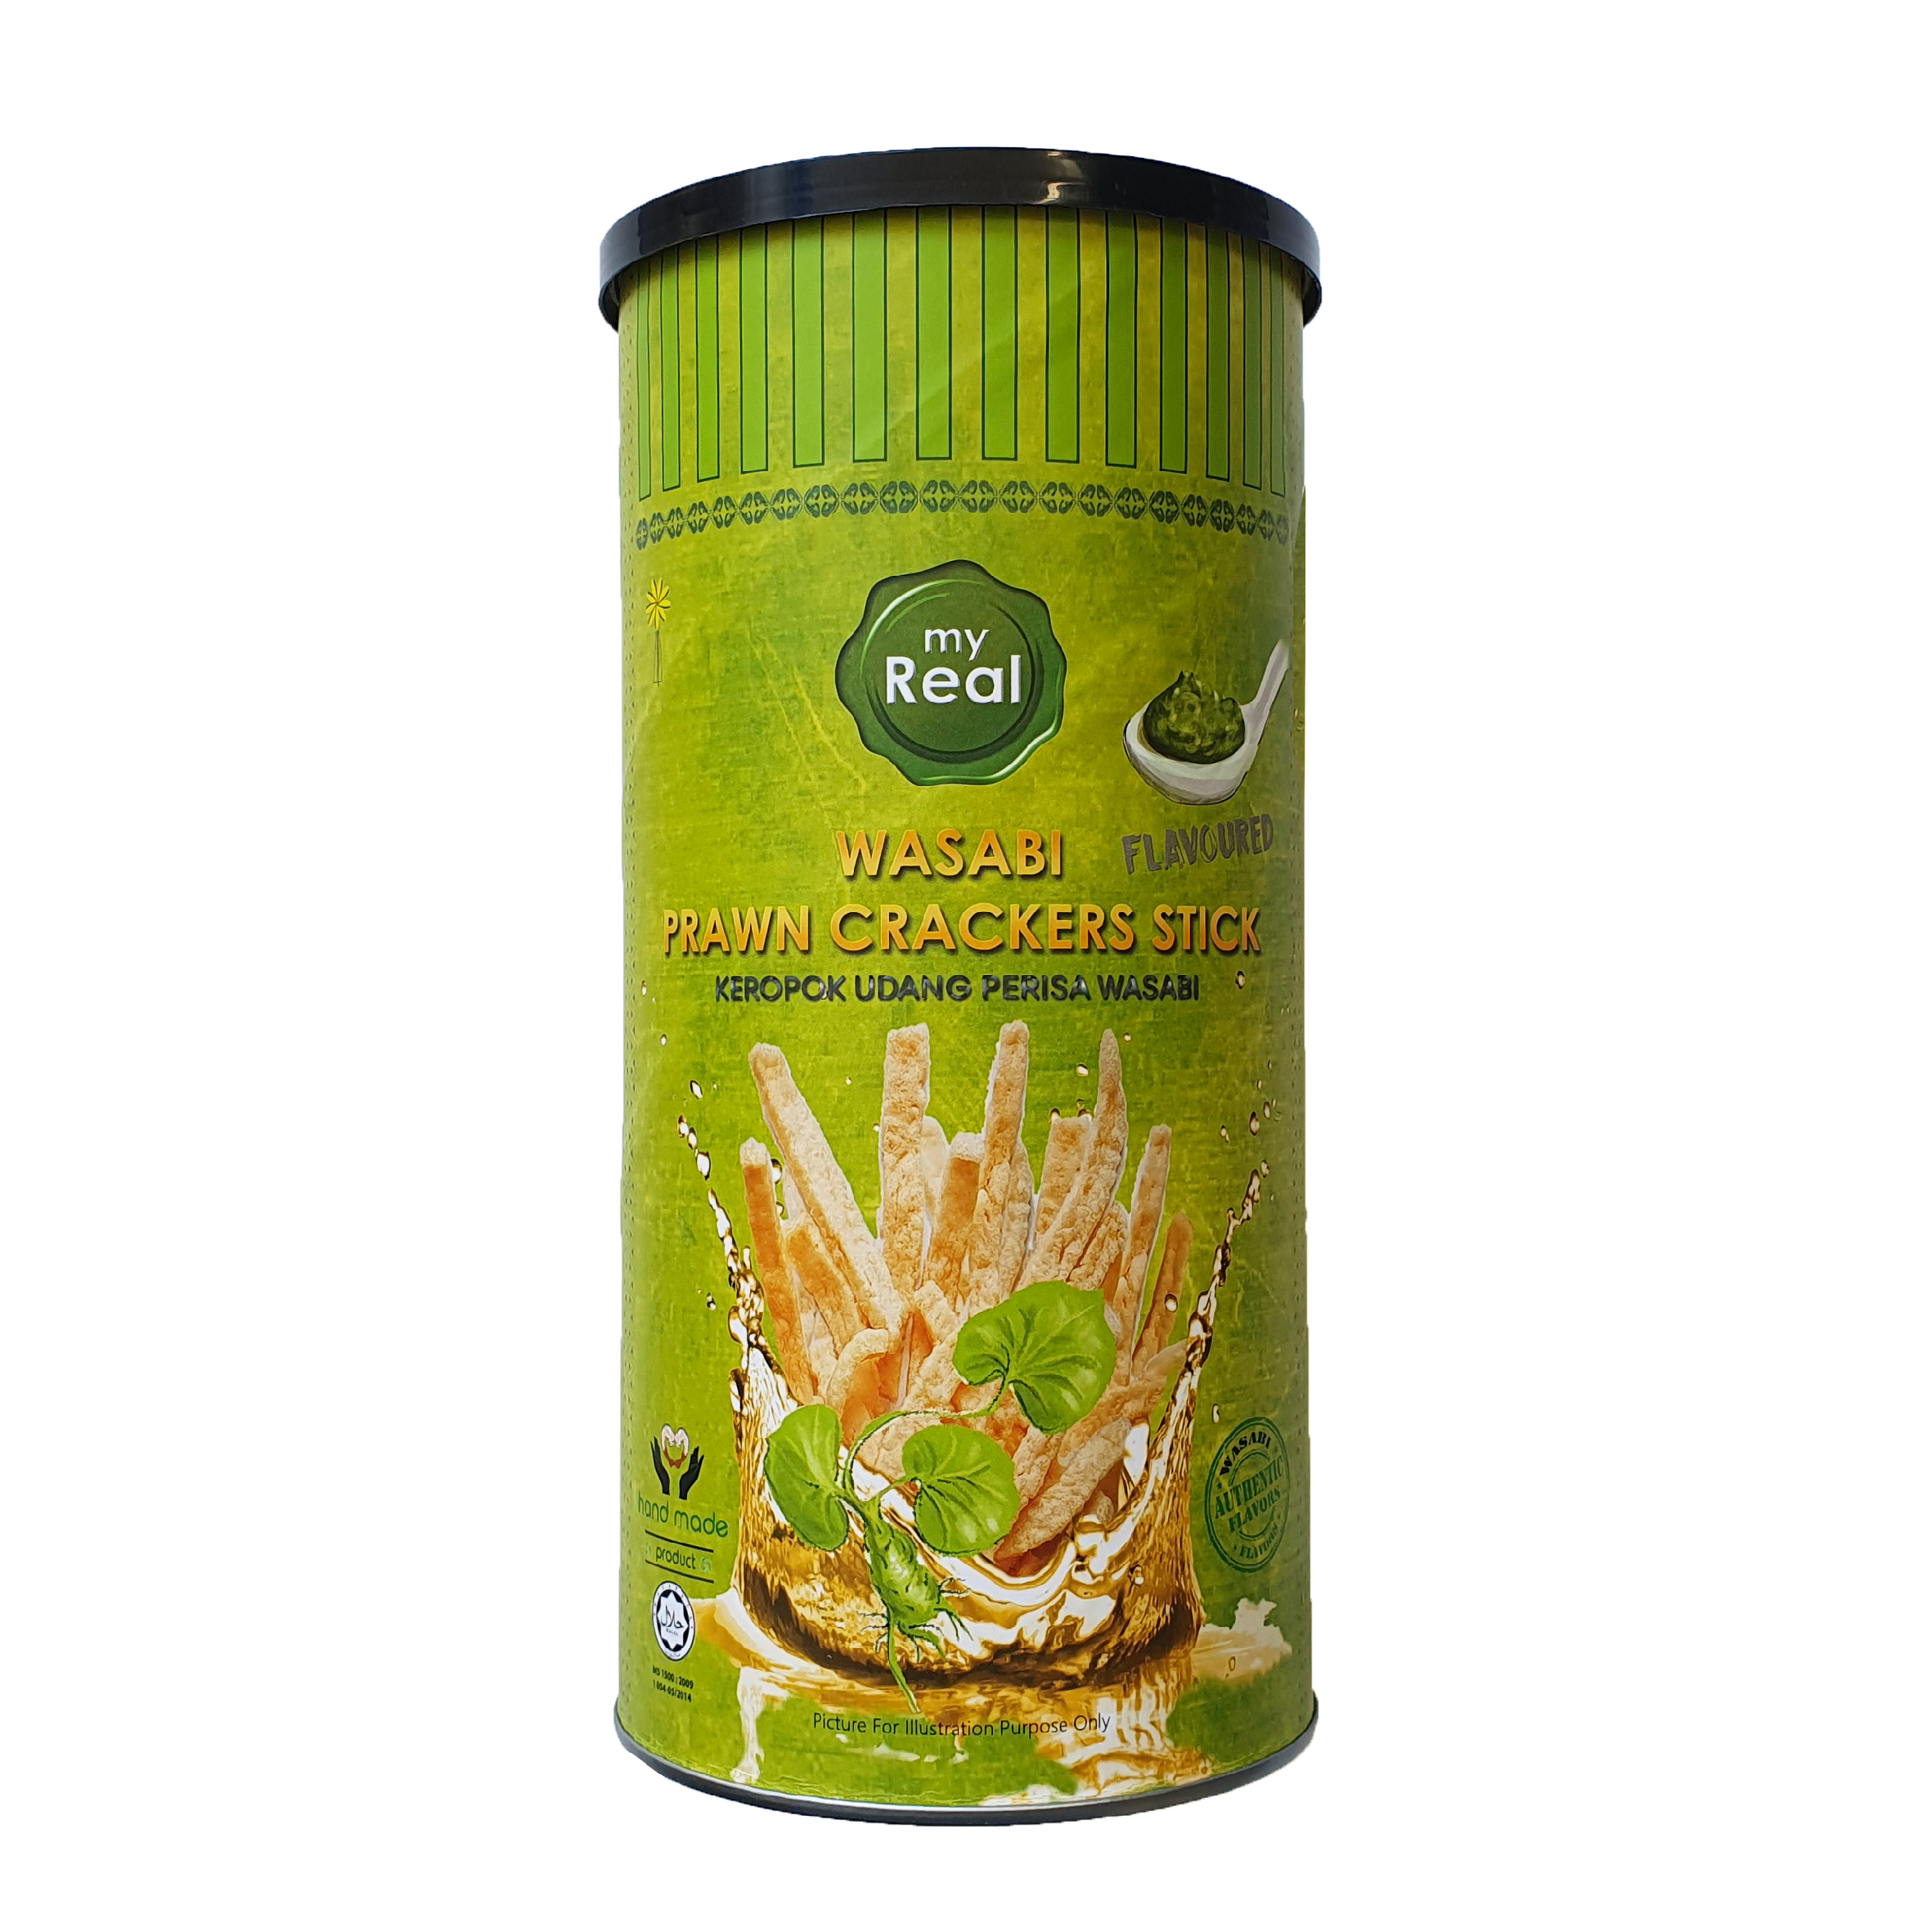 myReal Wasabi Prawn Crackers Stick 100g